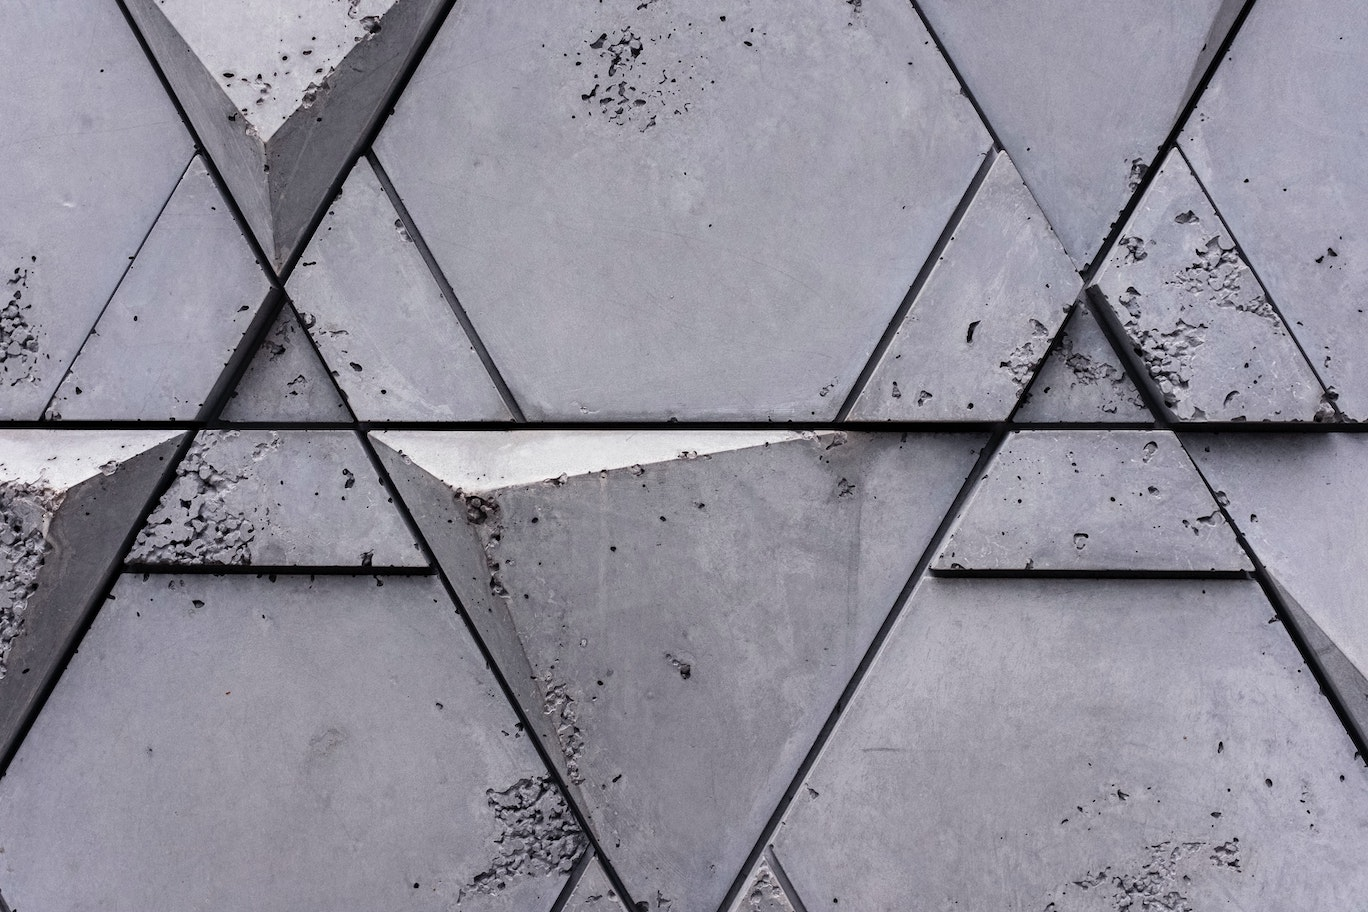 Concrete wall with triangular shapes